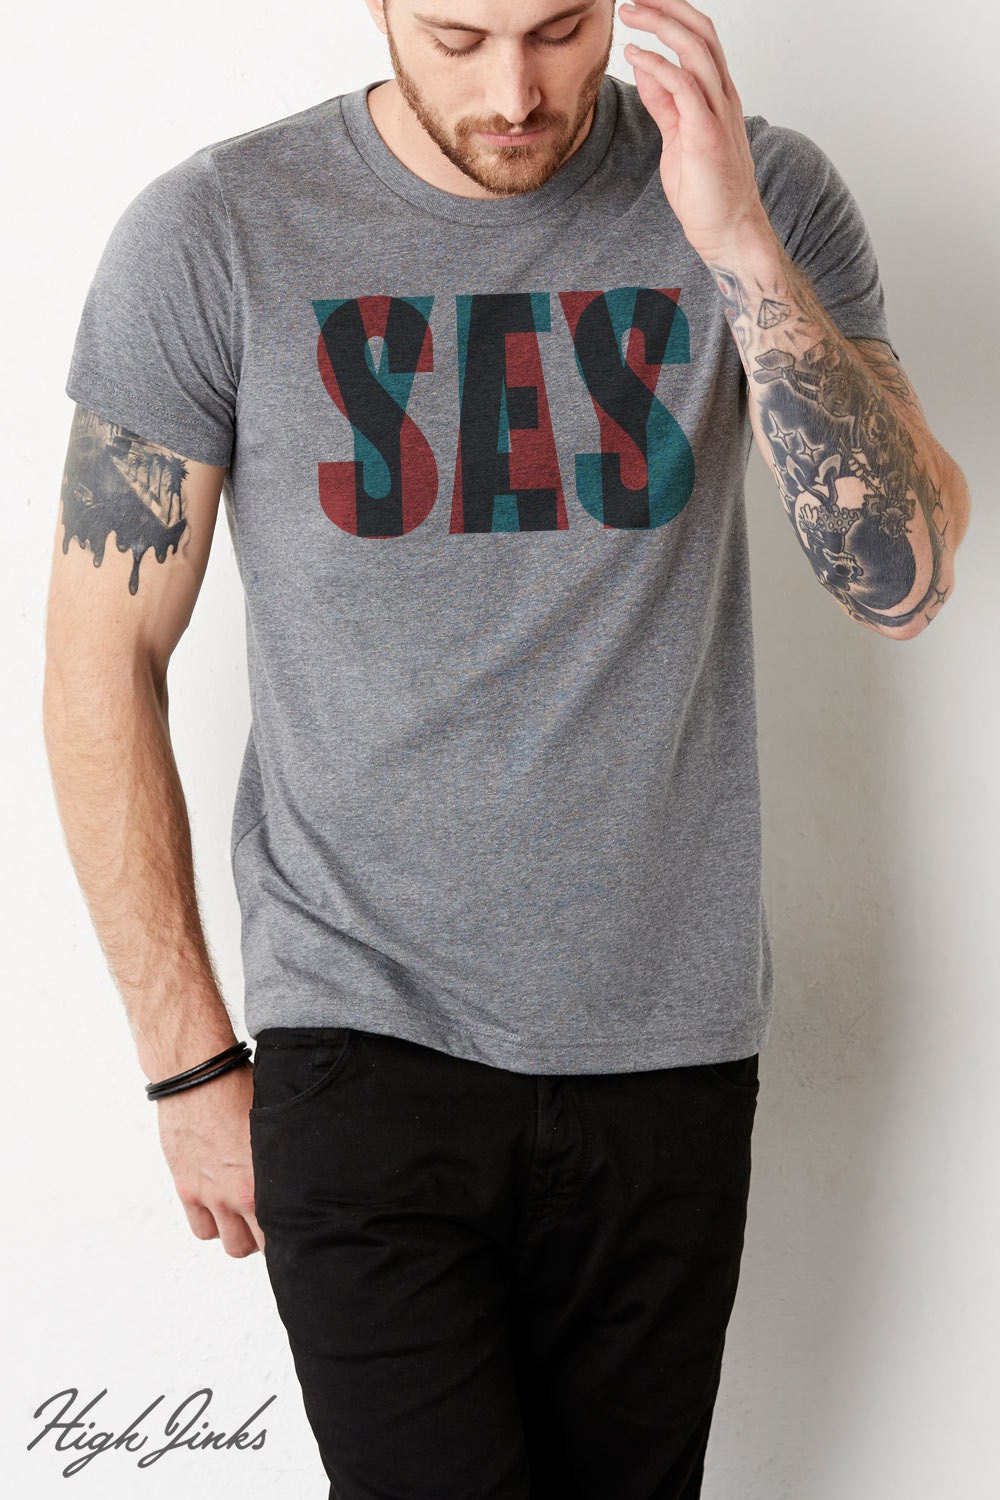 Say yes adult 39 s crew neck t shirt for High crew neck t shirts